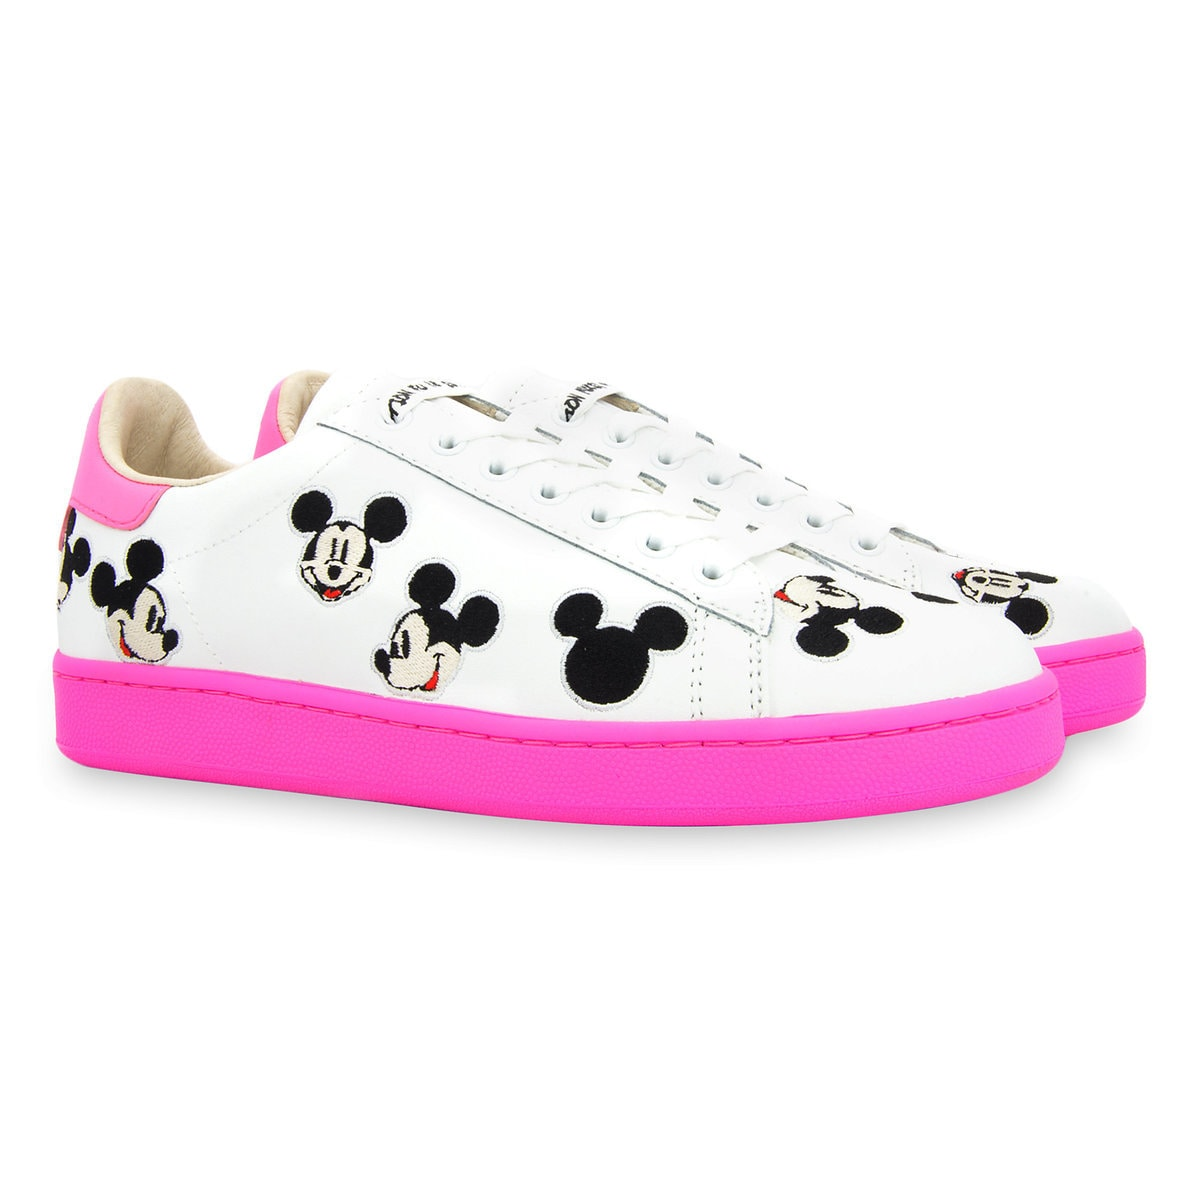 4b57ce1109c6 Product Image of Mickey Mouse Sneakers for Women by Master of Arts   1